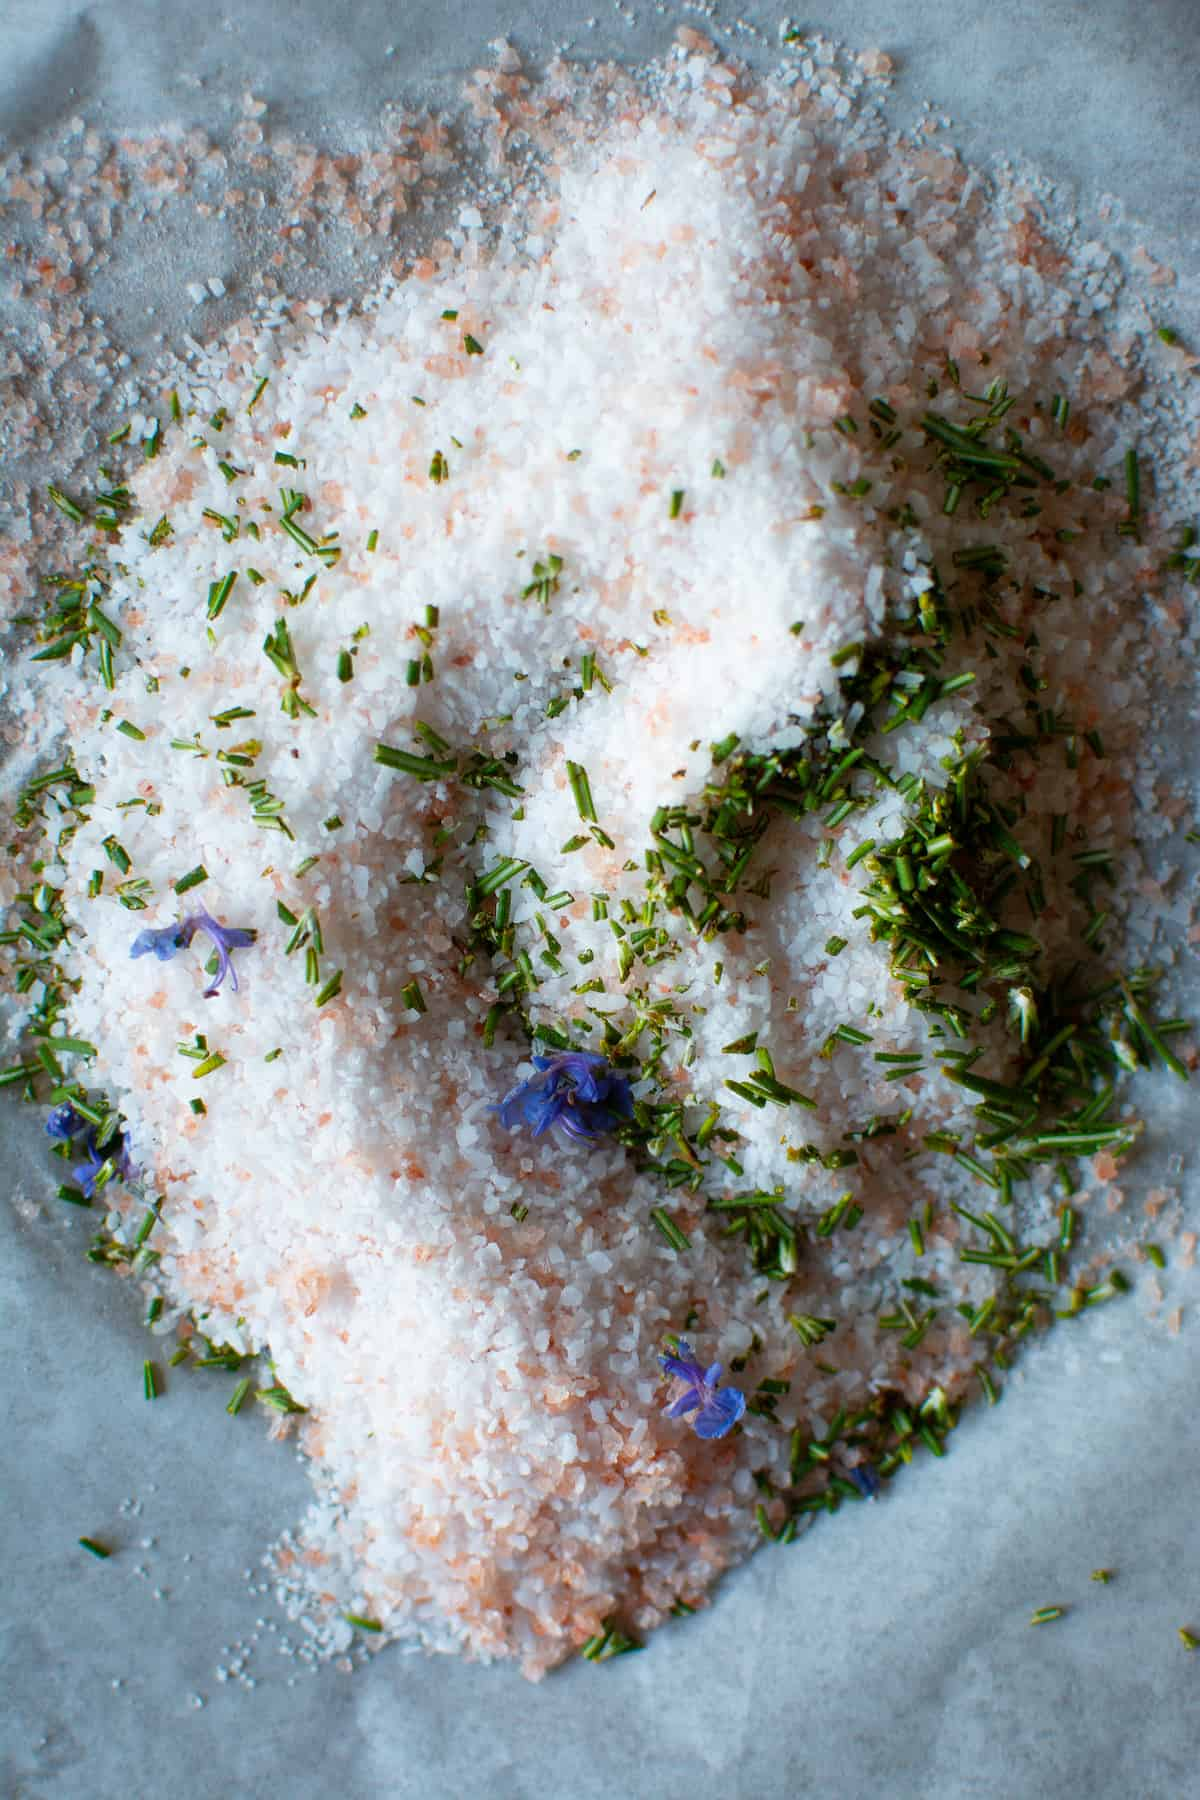 Pink and white salt with fresh chopped rosemary and purple rosemary flowers on a piece of parchment paper.